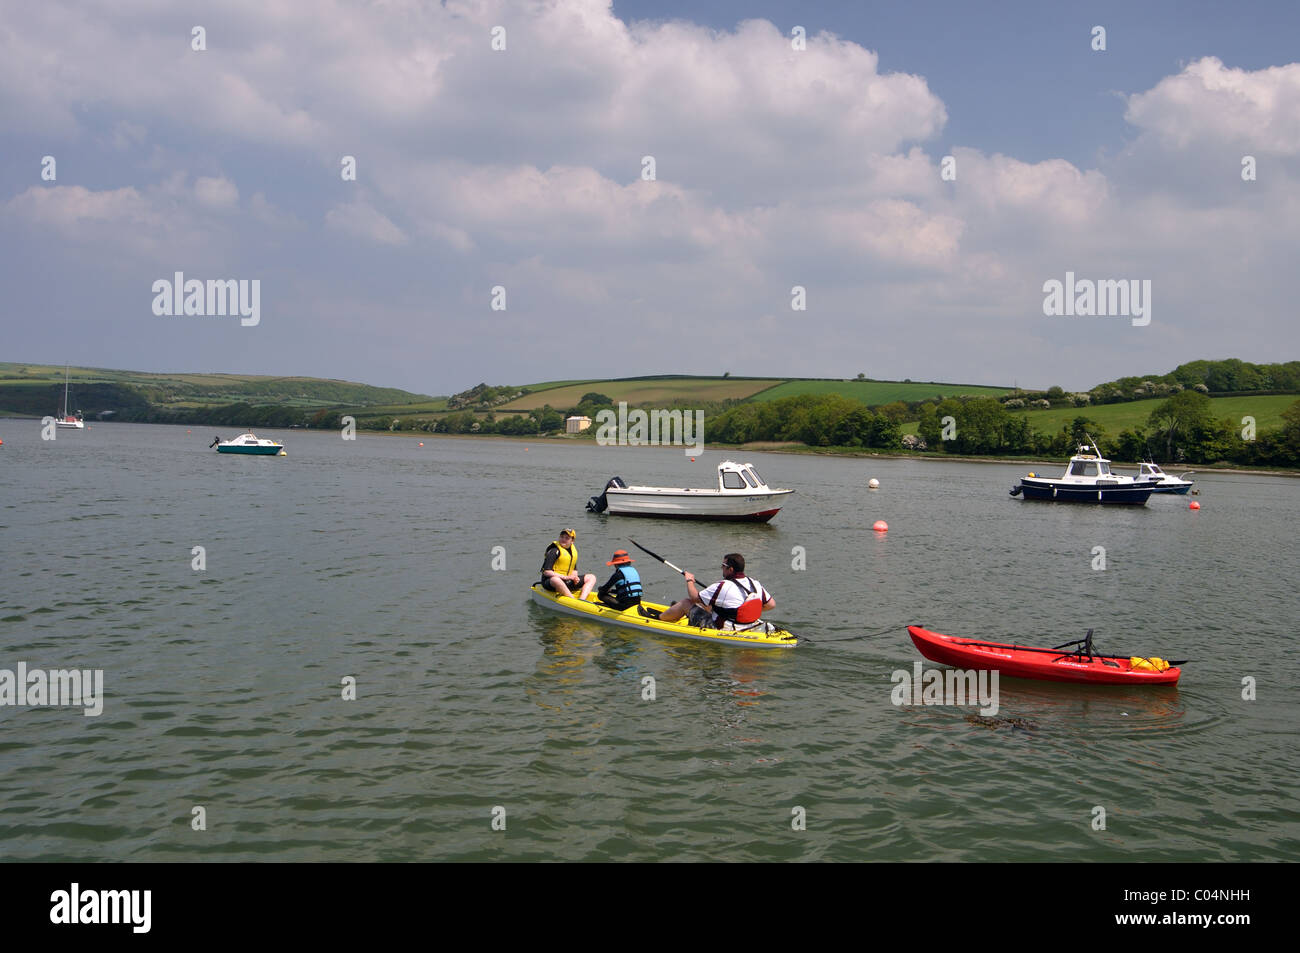 Family kayaking on River Teifi, Pembrokeshire, Wales Stock Photo